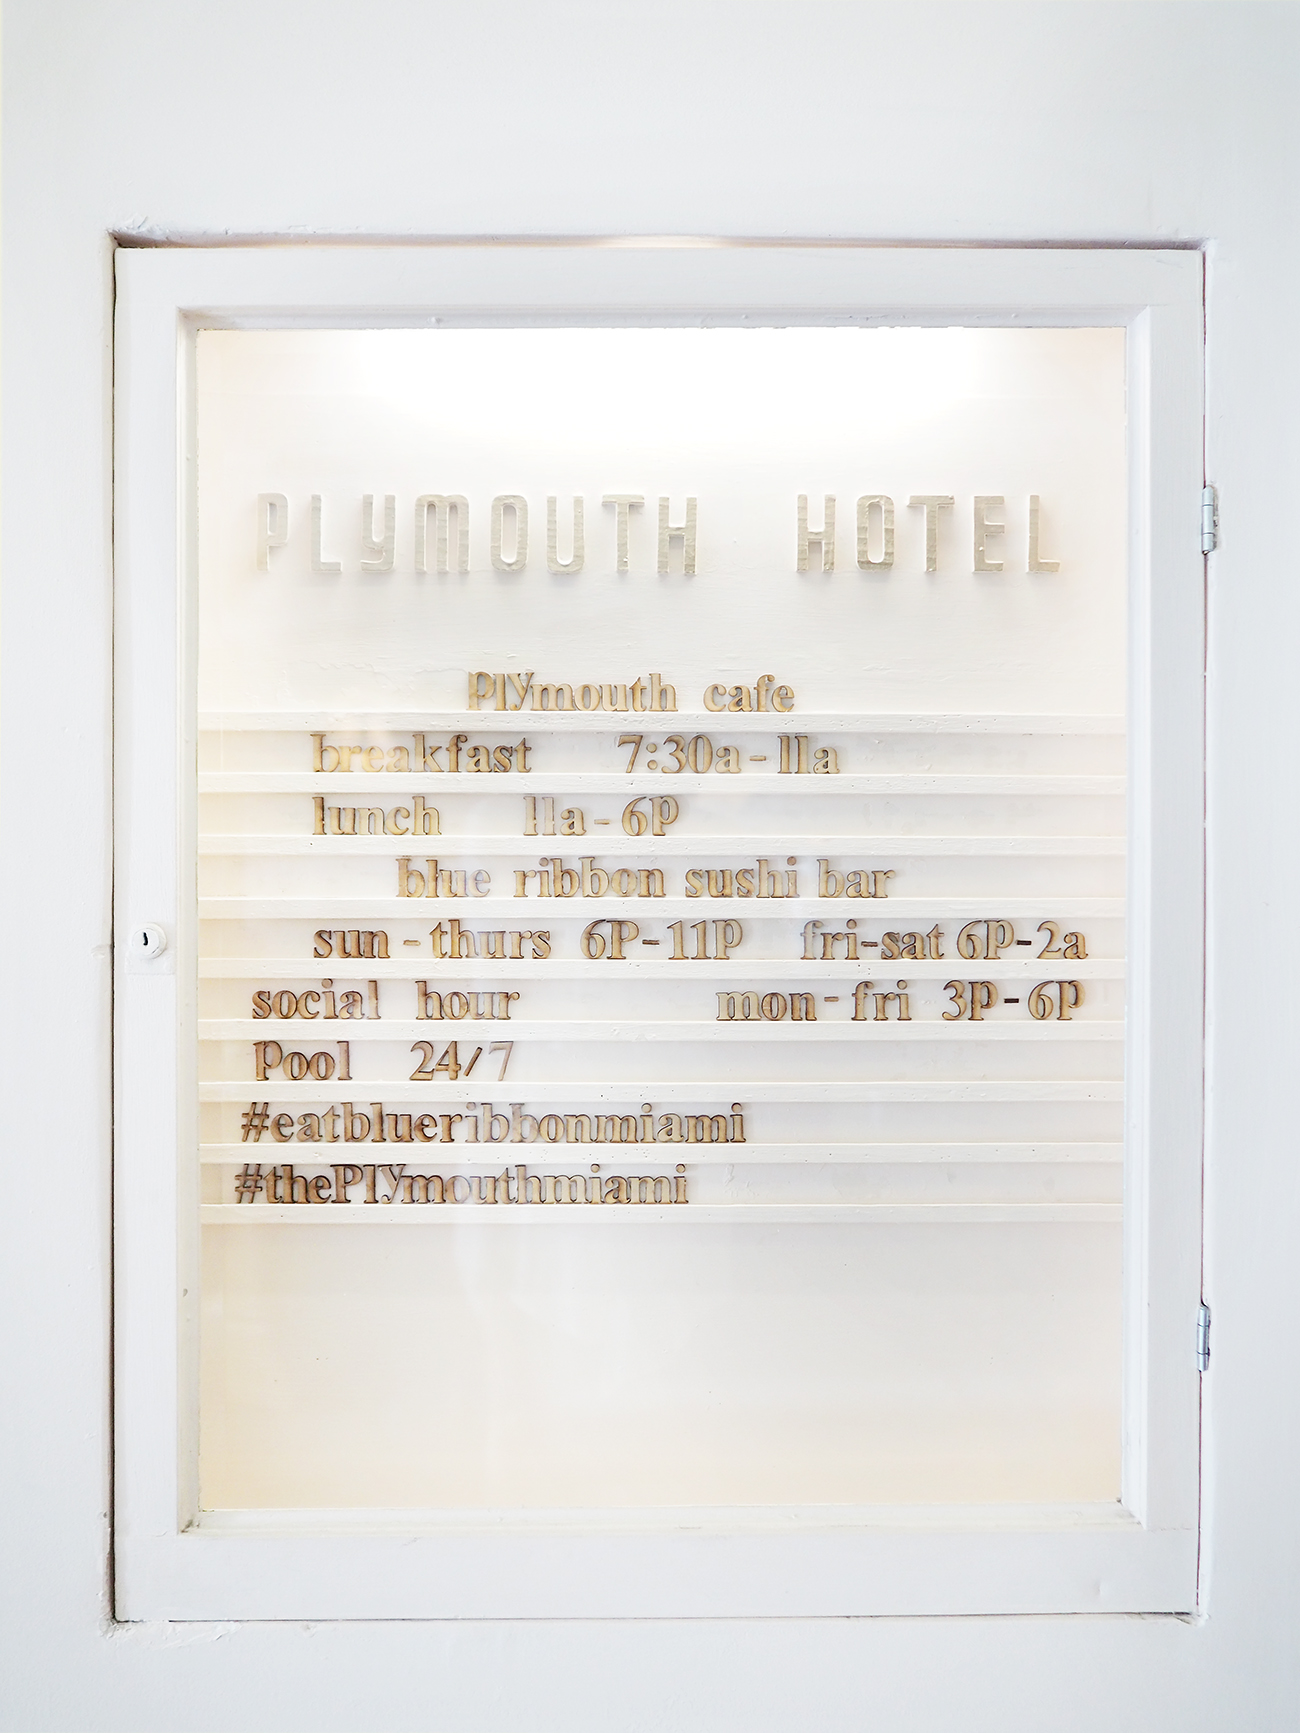 Plymouth Hotel Miami Beach review